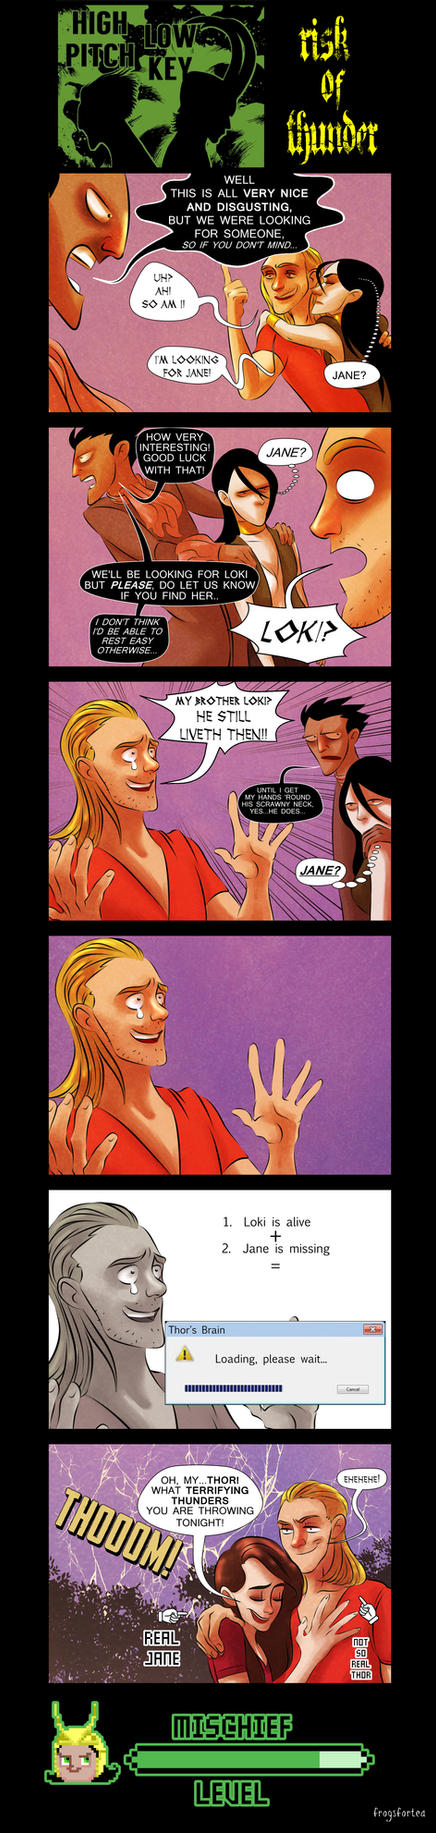 Risk Of Thunder-SPOILERS FOR THOR 2!! by frogsfortea